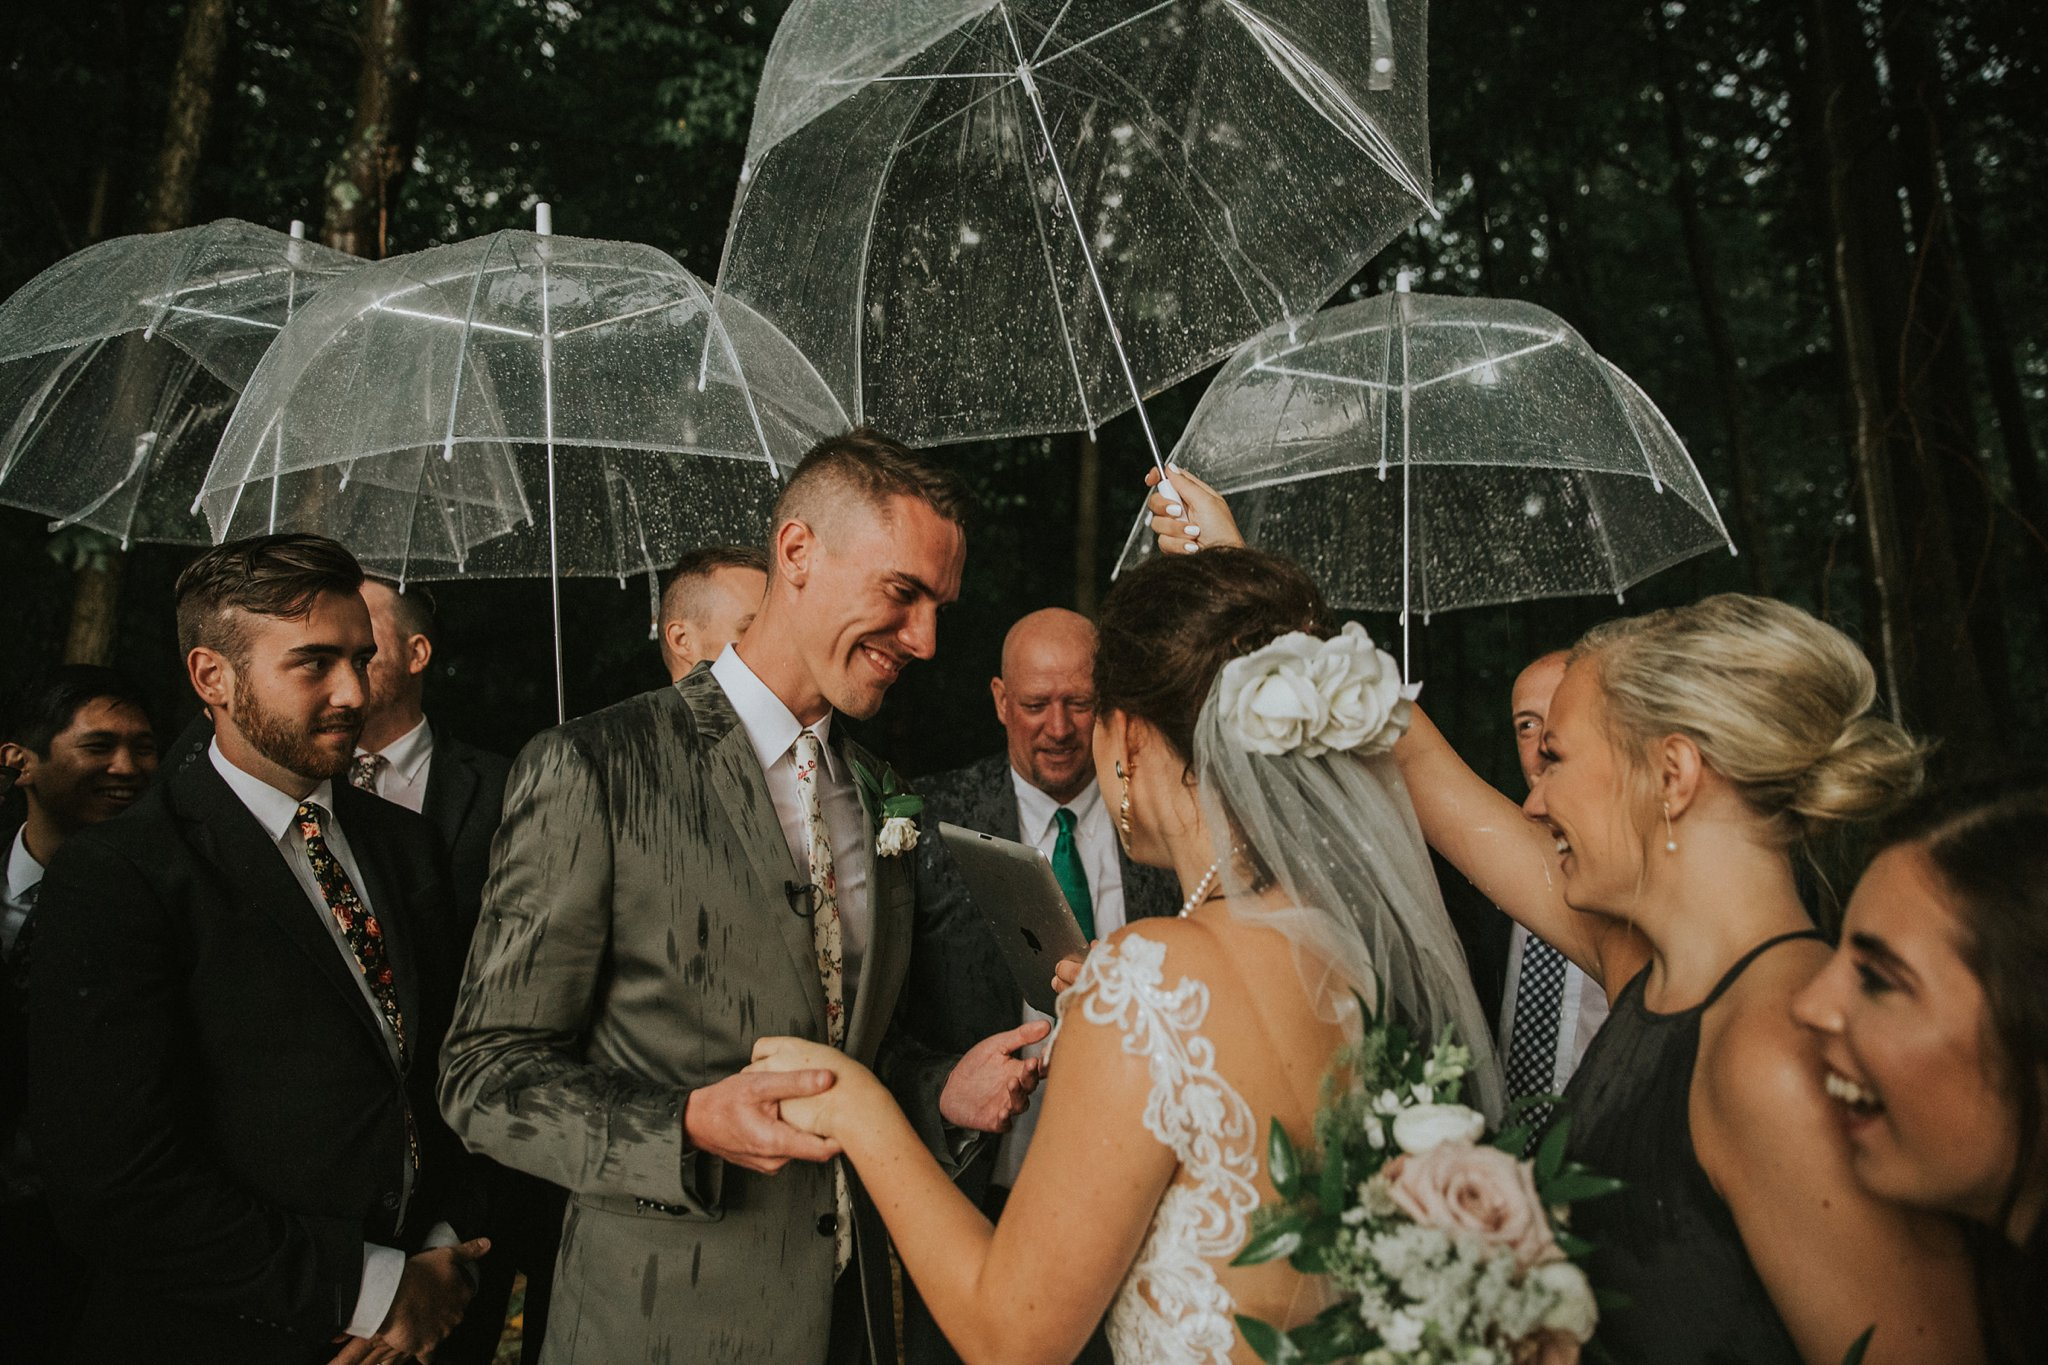 Southern-Indiana-Rainy-Outdoor-Wedding-Photos_0038.jpg